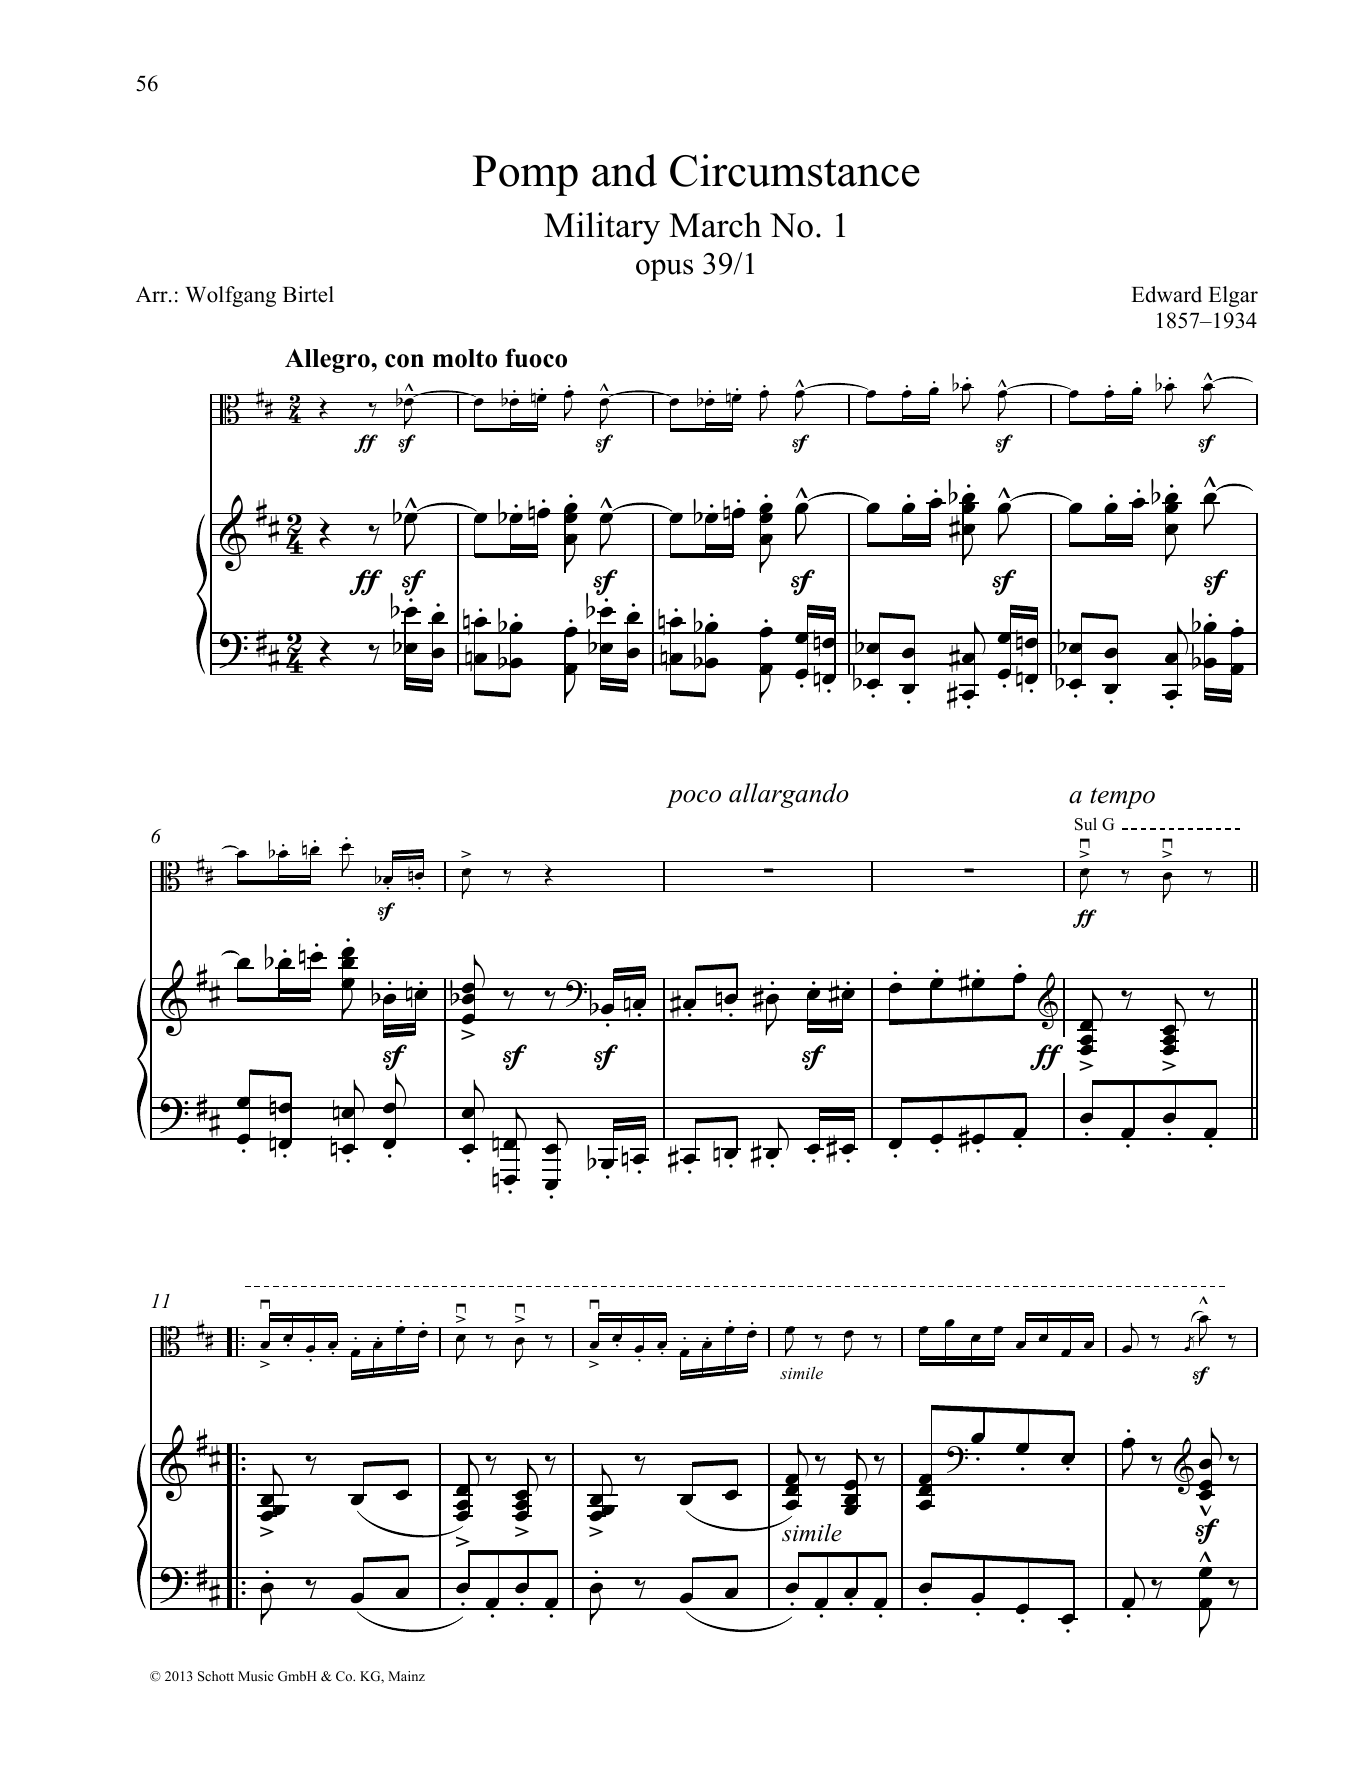 Pomp and circumstance sheet music at stanton 39 s sheet music for Pomp and circumstance